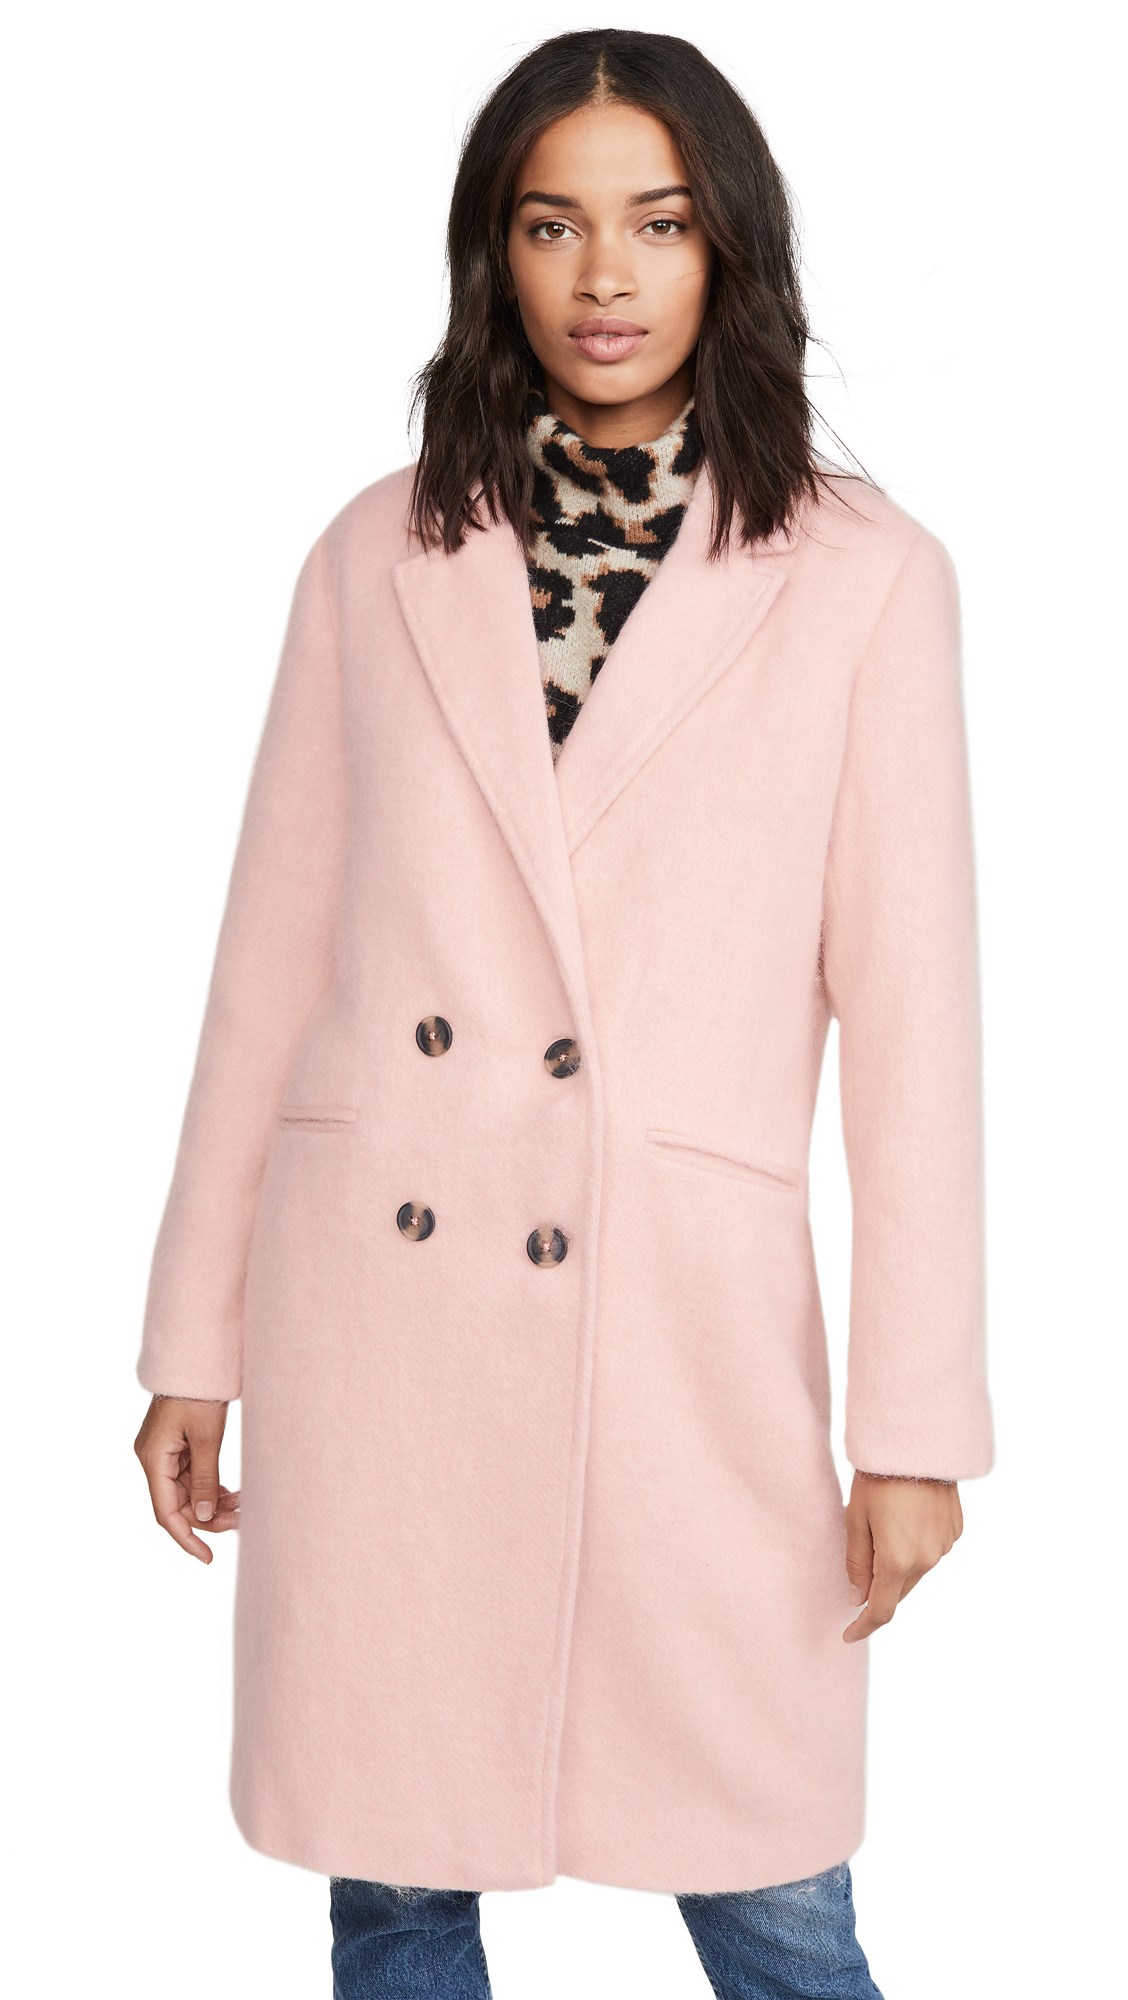 Buy cupcakes and cashmere Effie Jacket online beautiful cupcakes and cashmere Clothing, Jackets